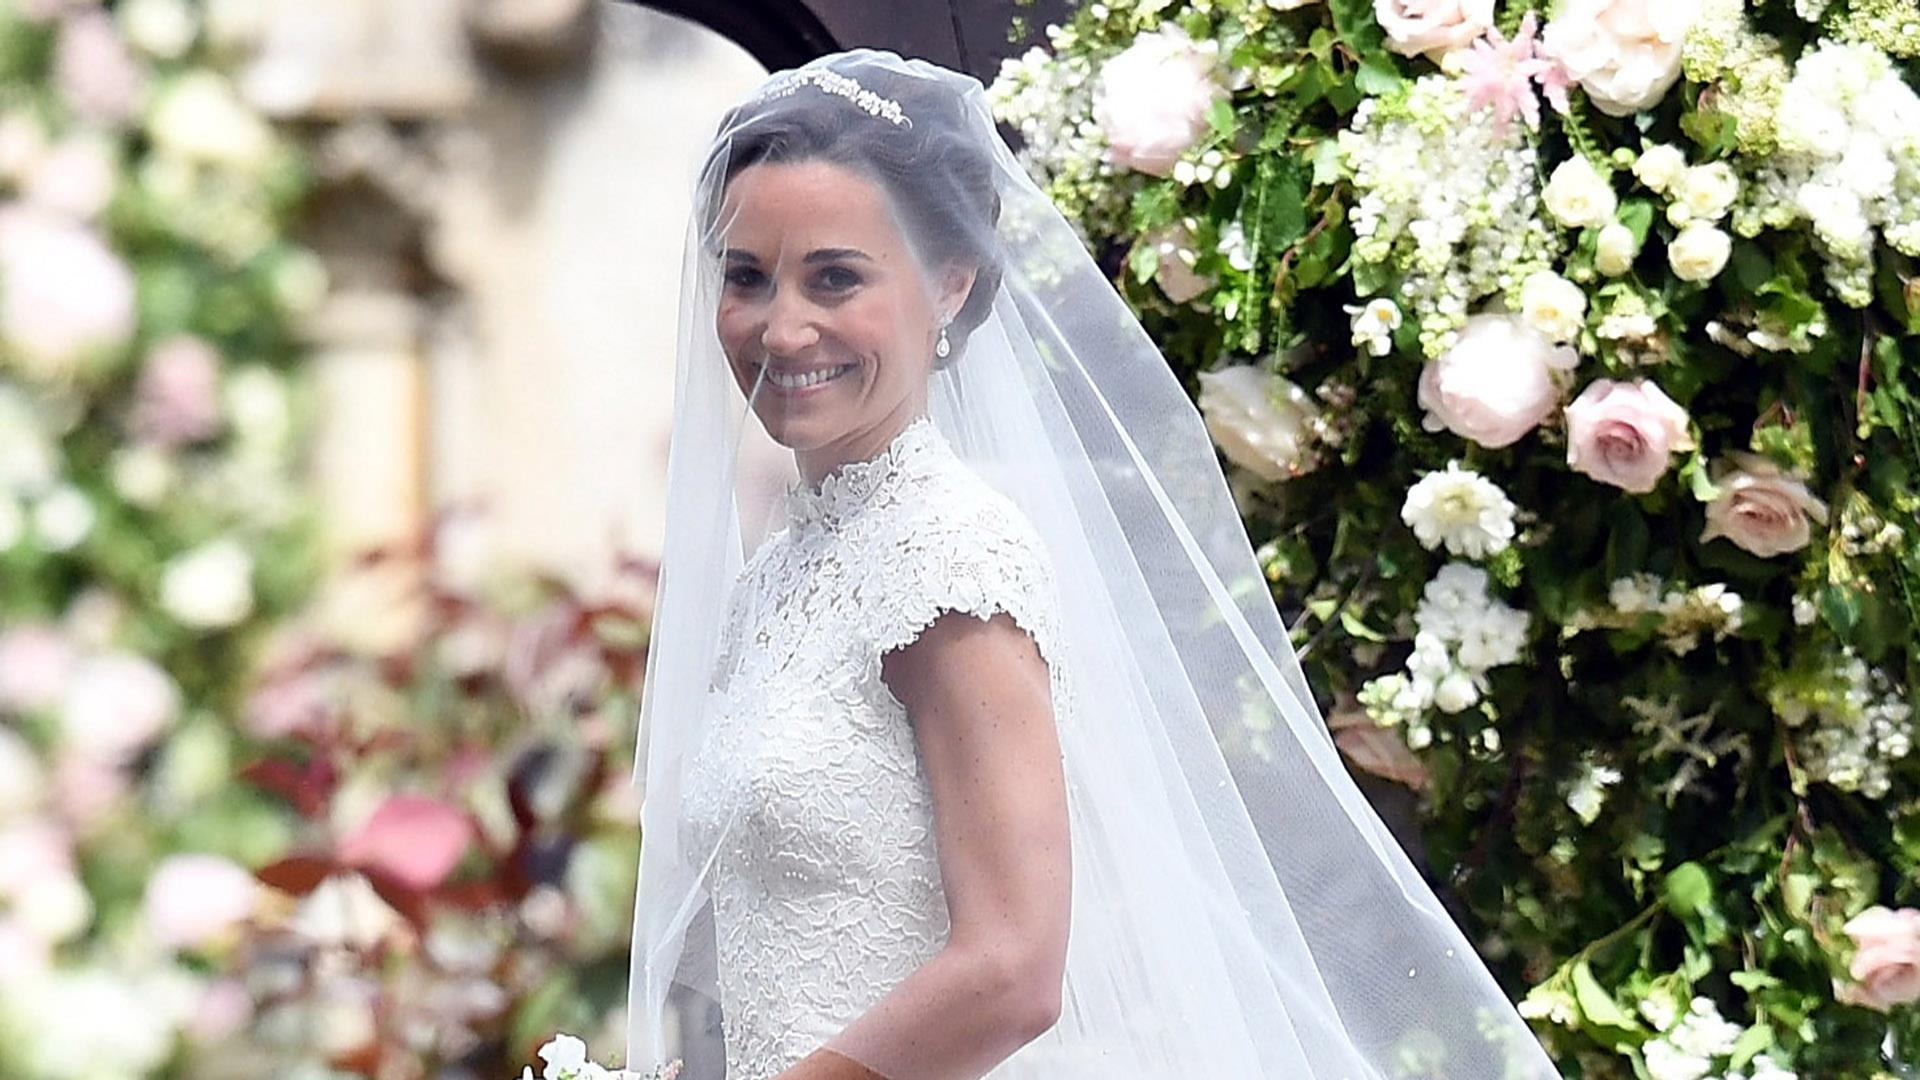 Pippa Middleton's Wedding: An Inside Look At The Dress And